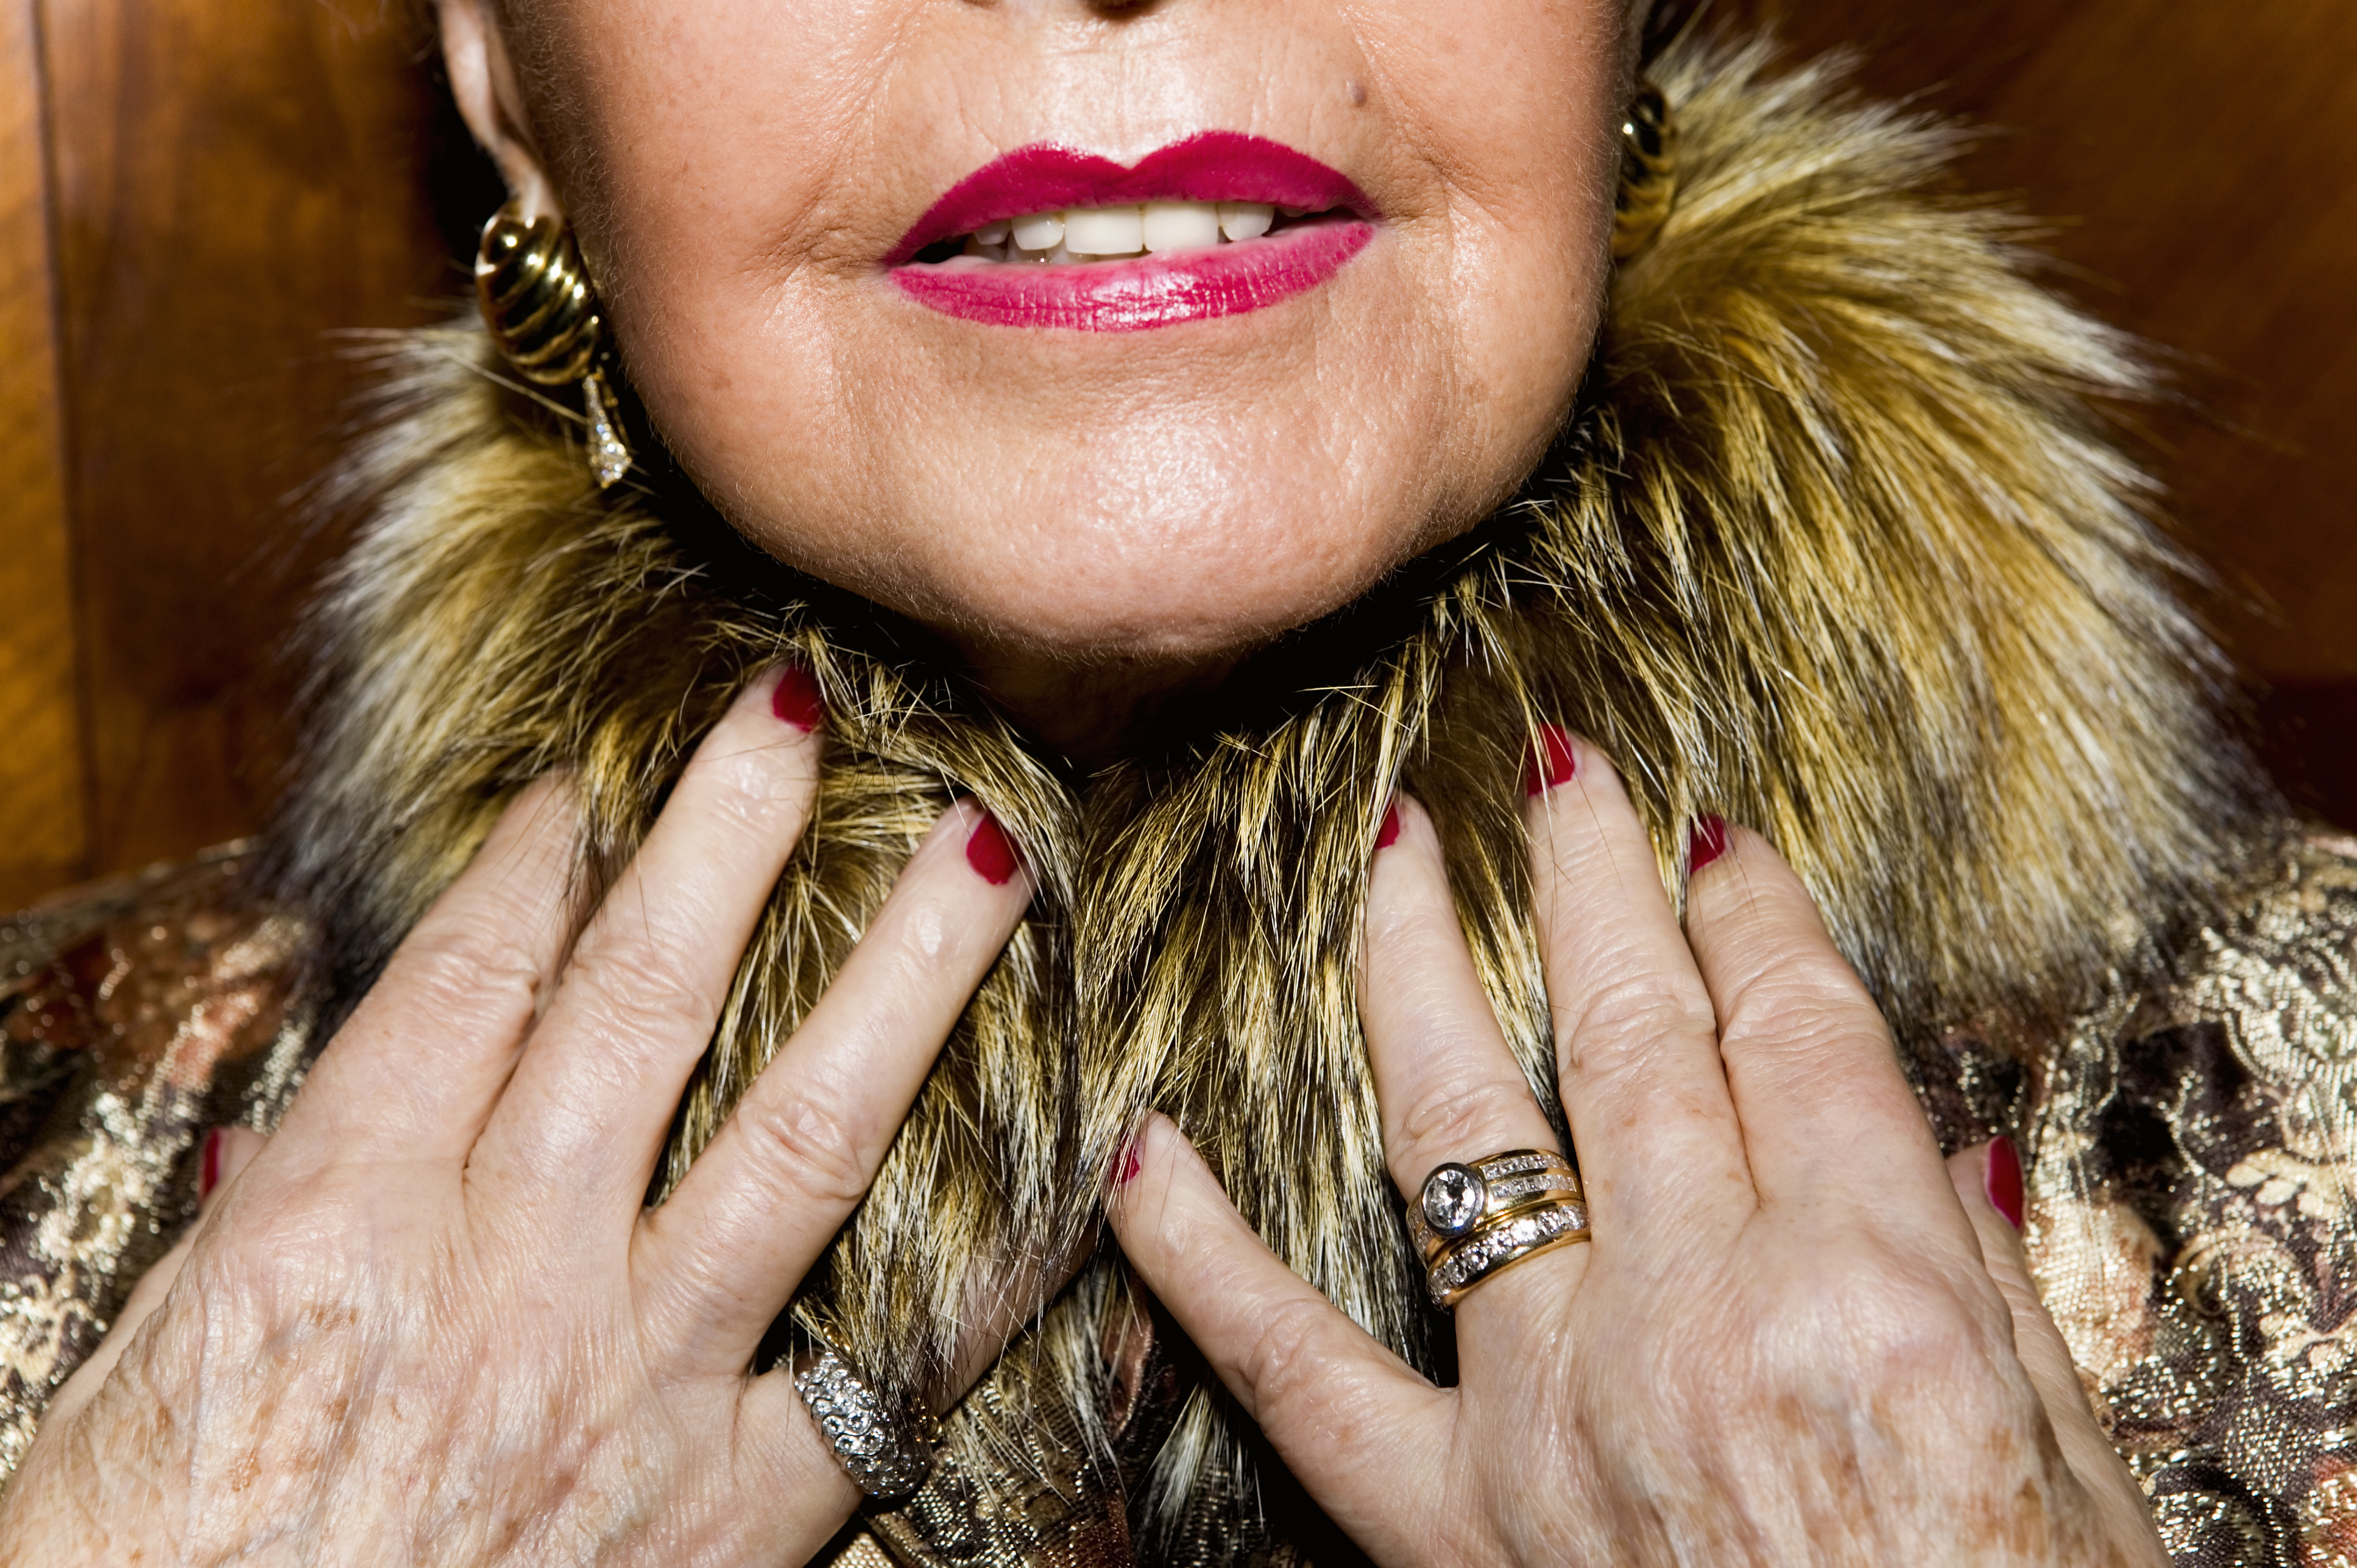 Senior woman wearing fur collared coat and rings, close-up